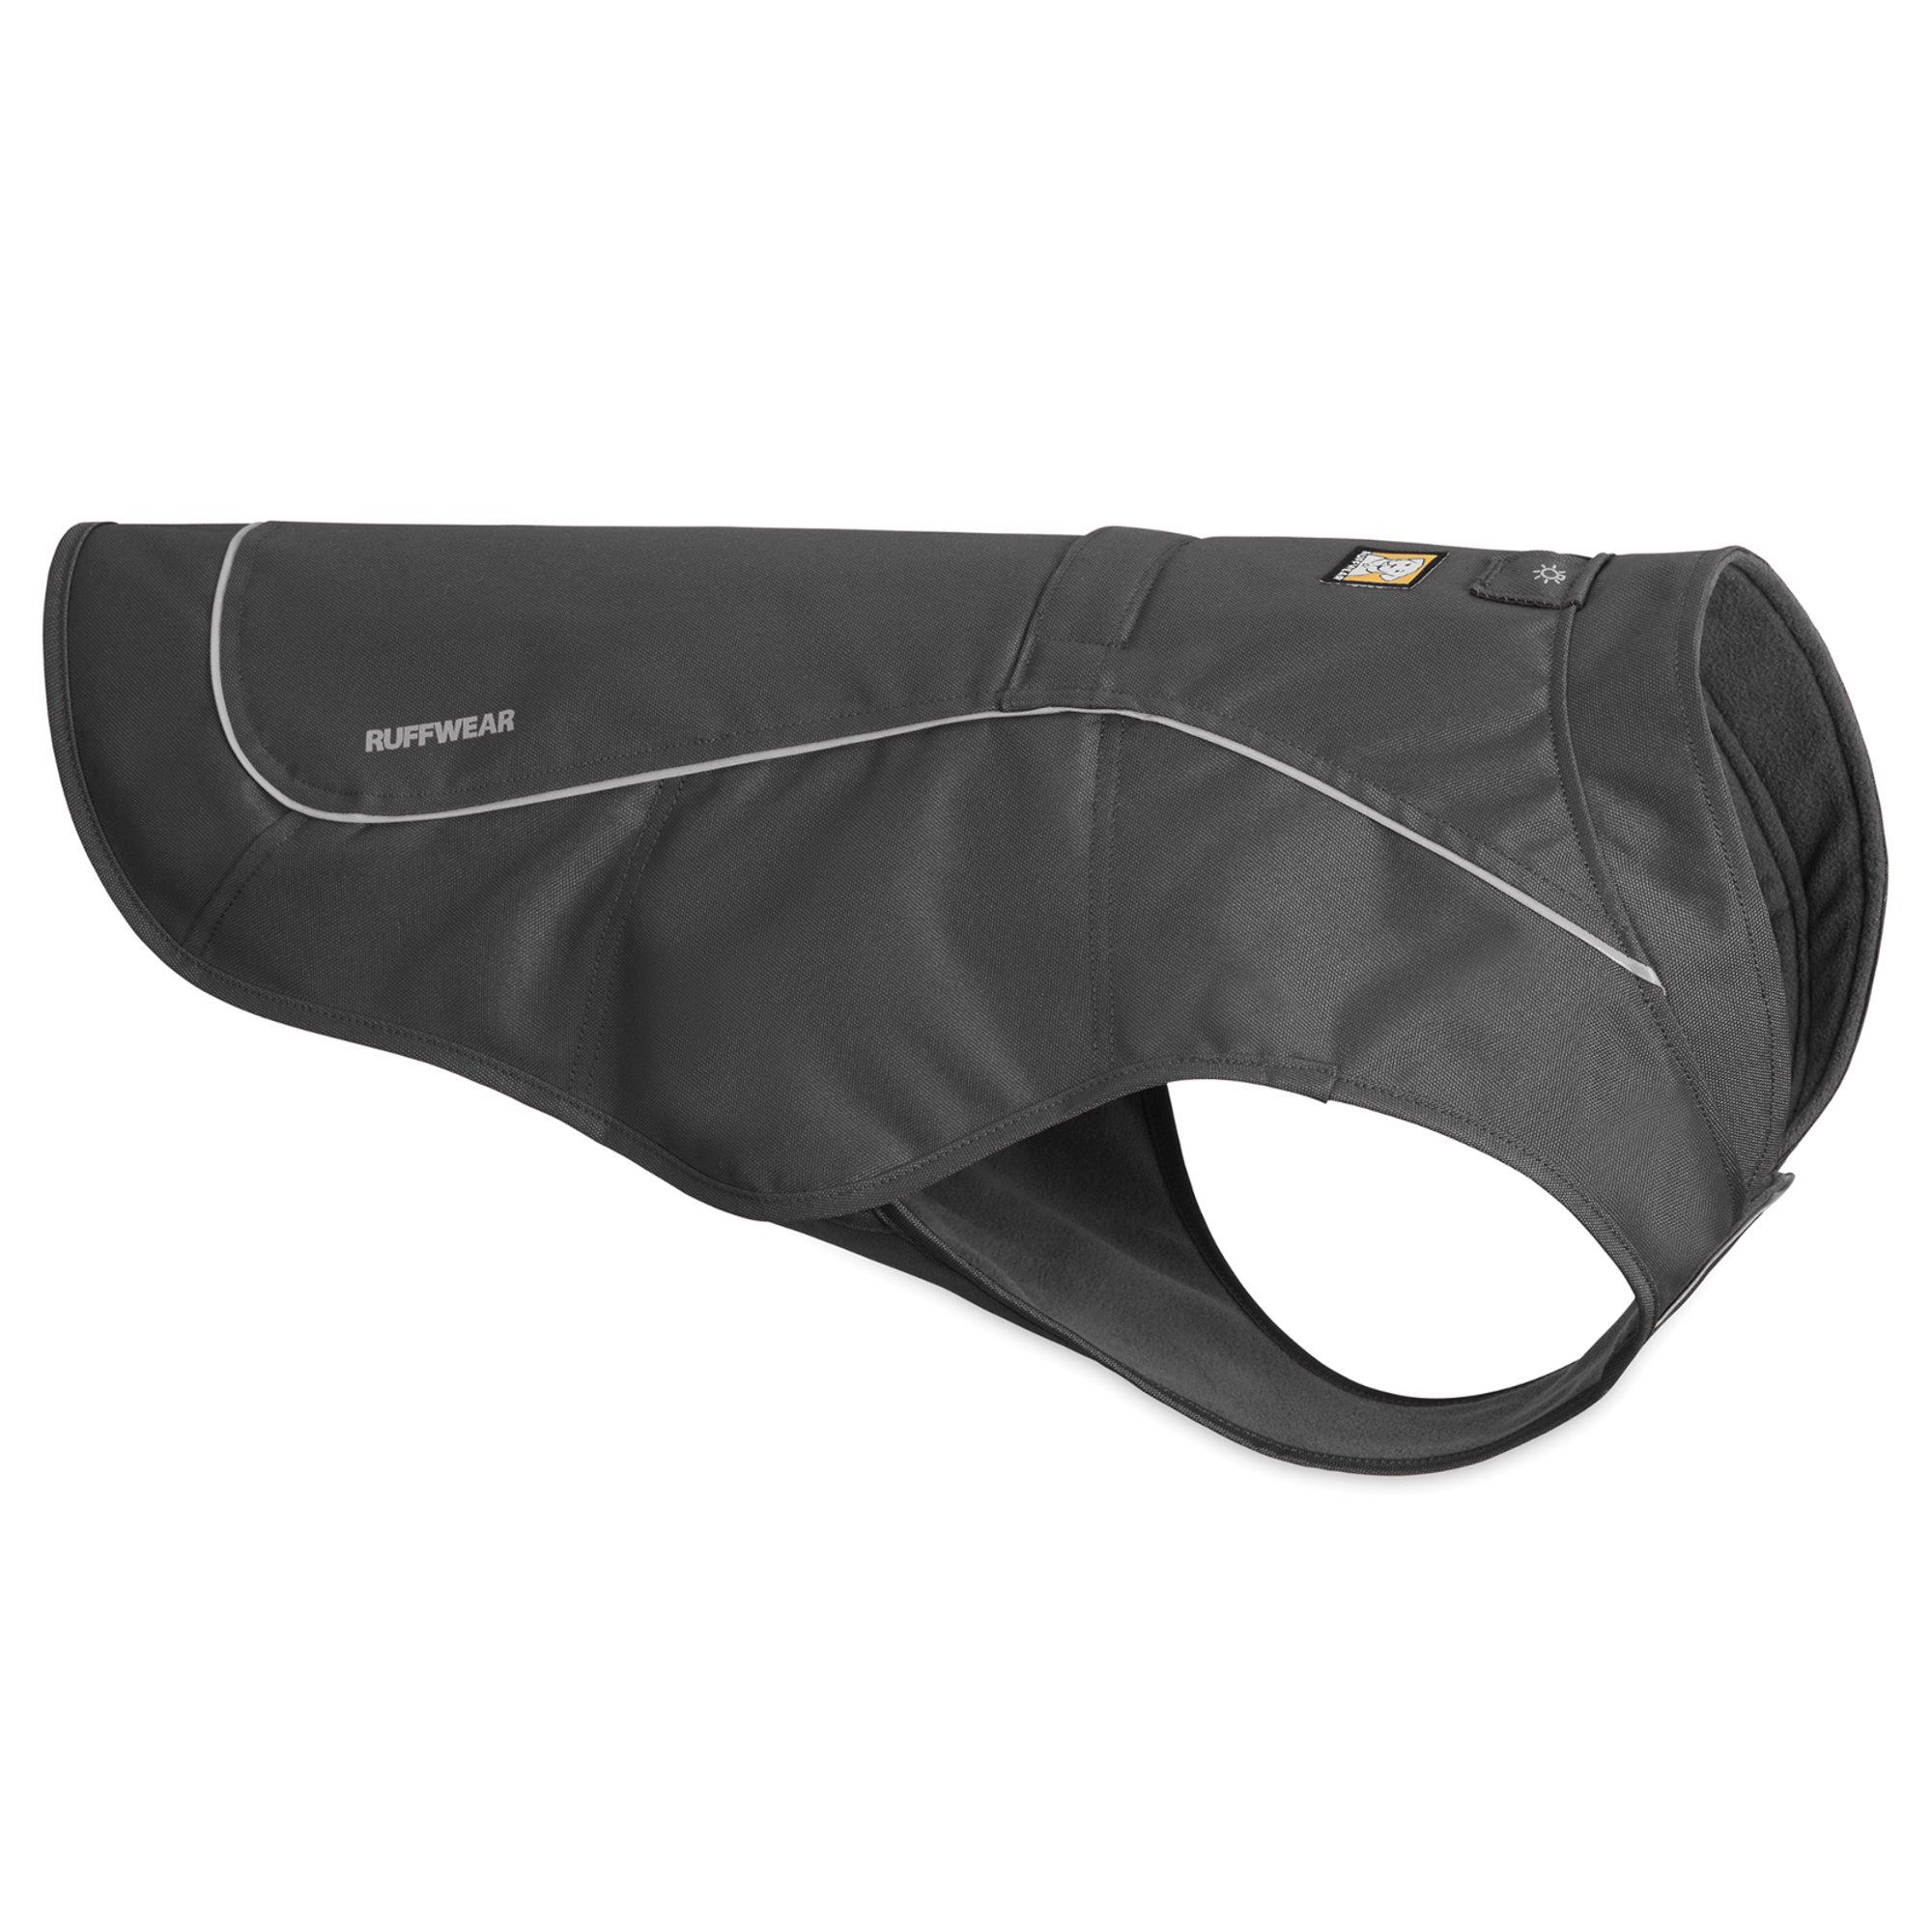 RUFFWEAR - Overcoat Insulated Dog Jacket for Cold Weather, Twilight Gray, X-Large